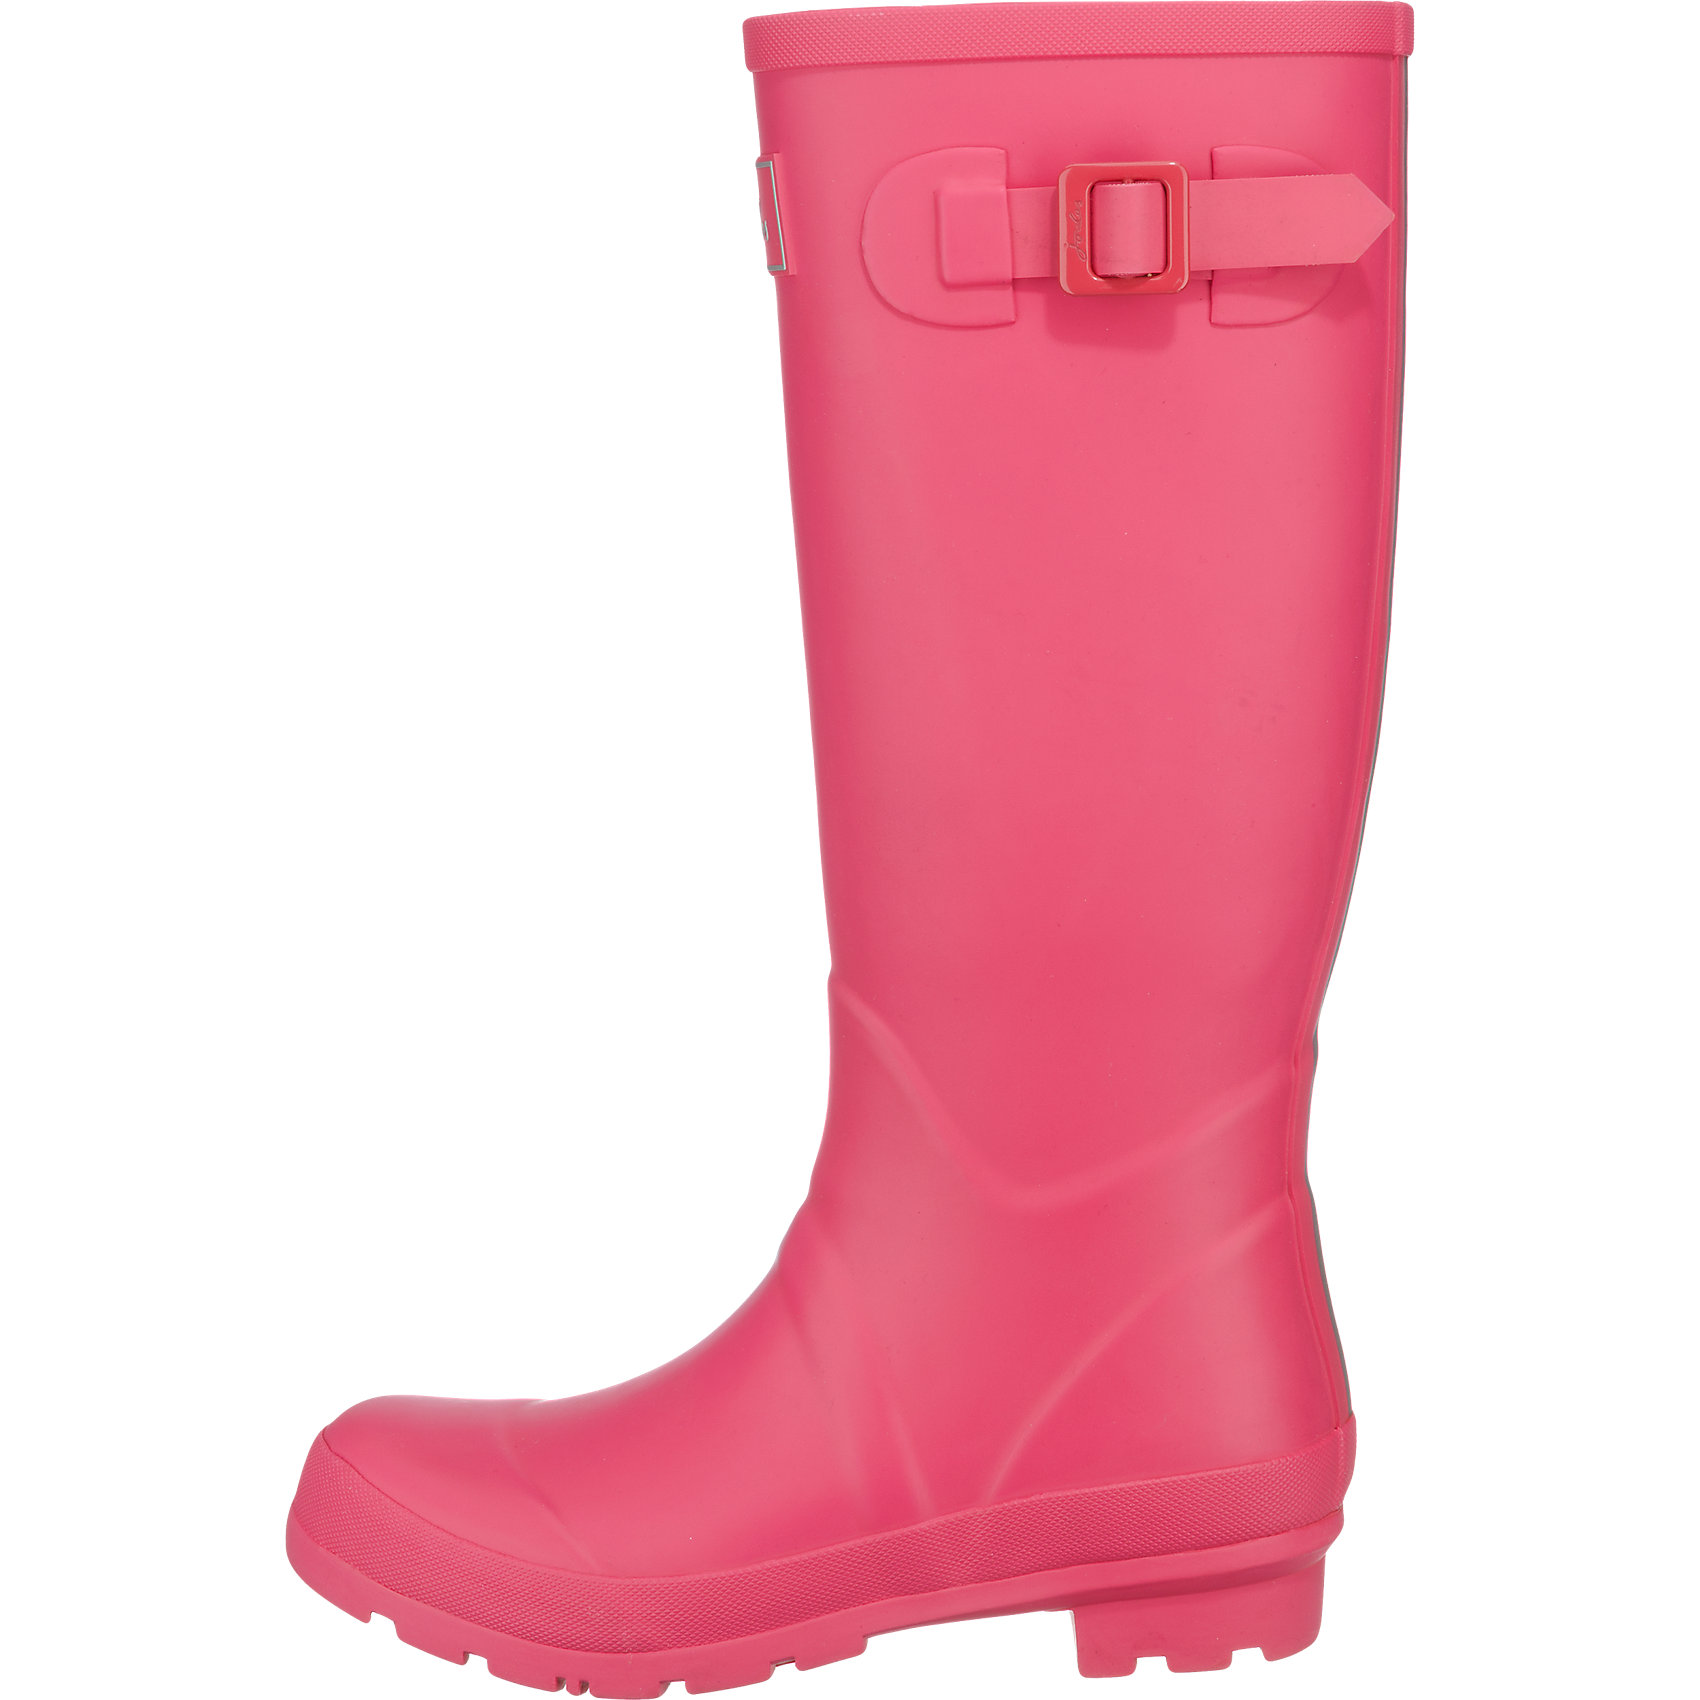 separation shoes e4e70 00e6a Details zu Neu Tom Joule Fieldwelly Gummistiefel 5770217 für Damen pink